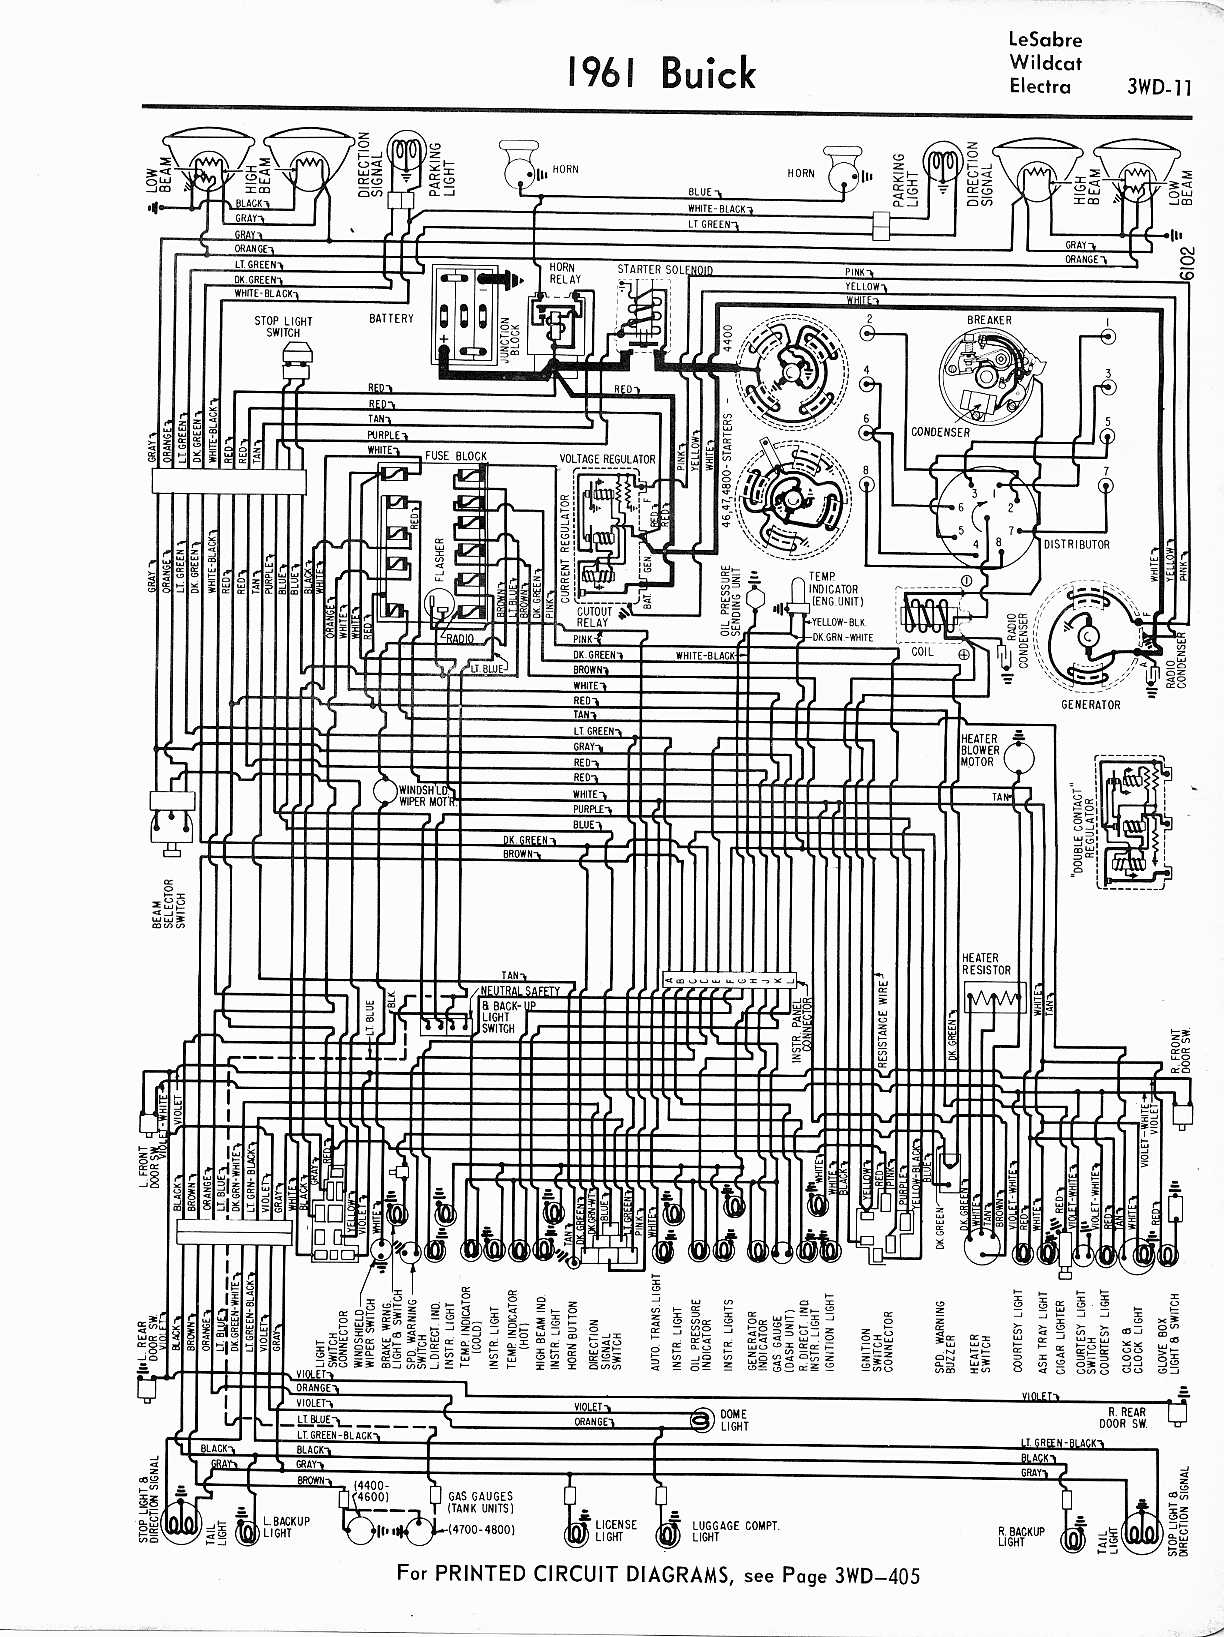 1969 Buick Riviera Wiring Diagram Data Set Trans Am Fuse Box Diagrams 1957 1965 Rh Oldcarmanualproject Com 1990 95